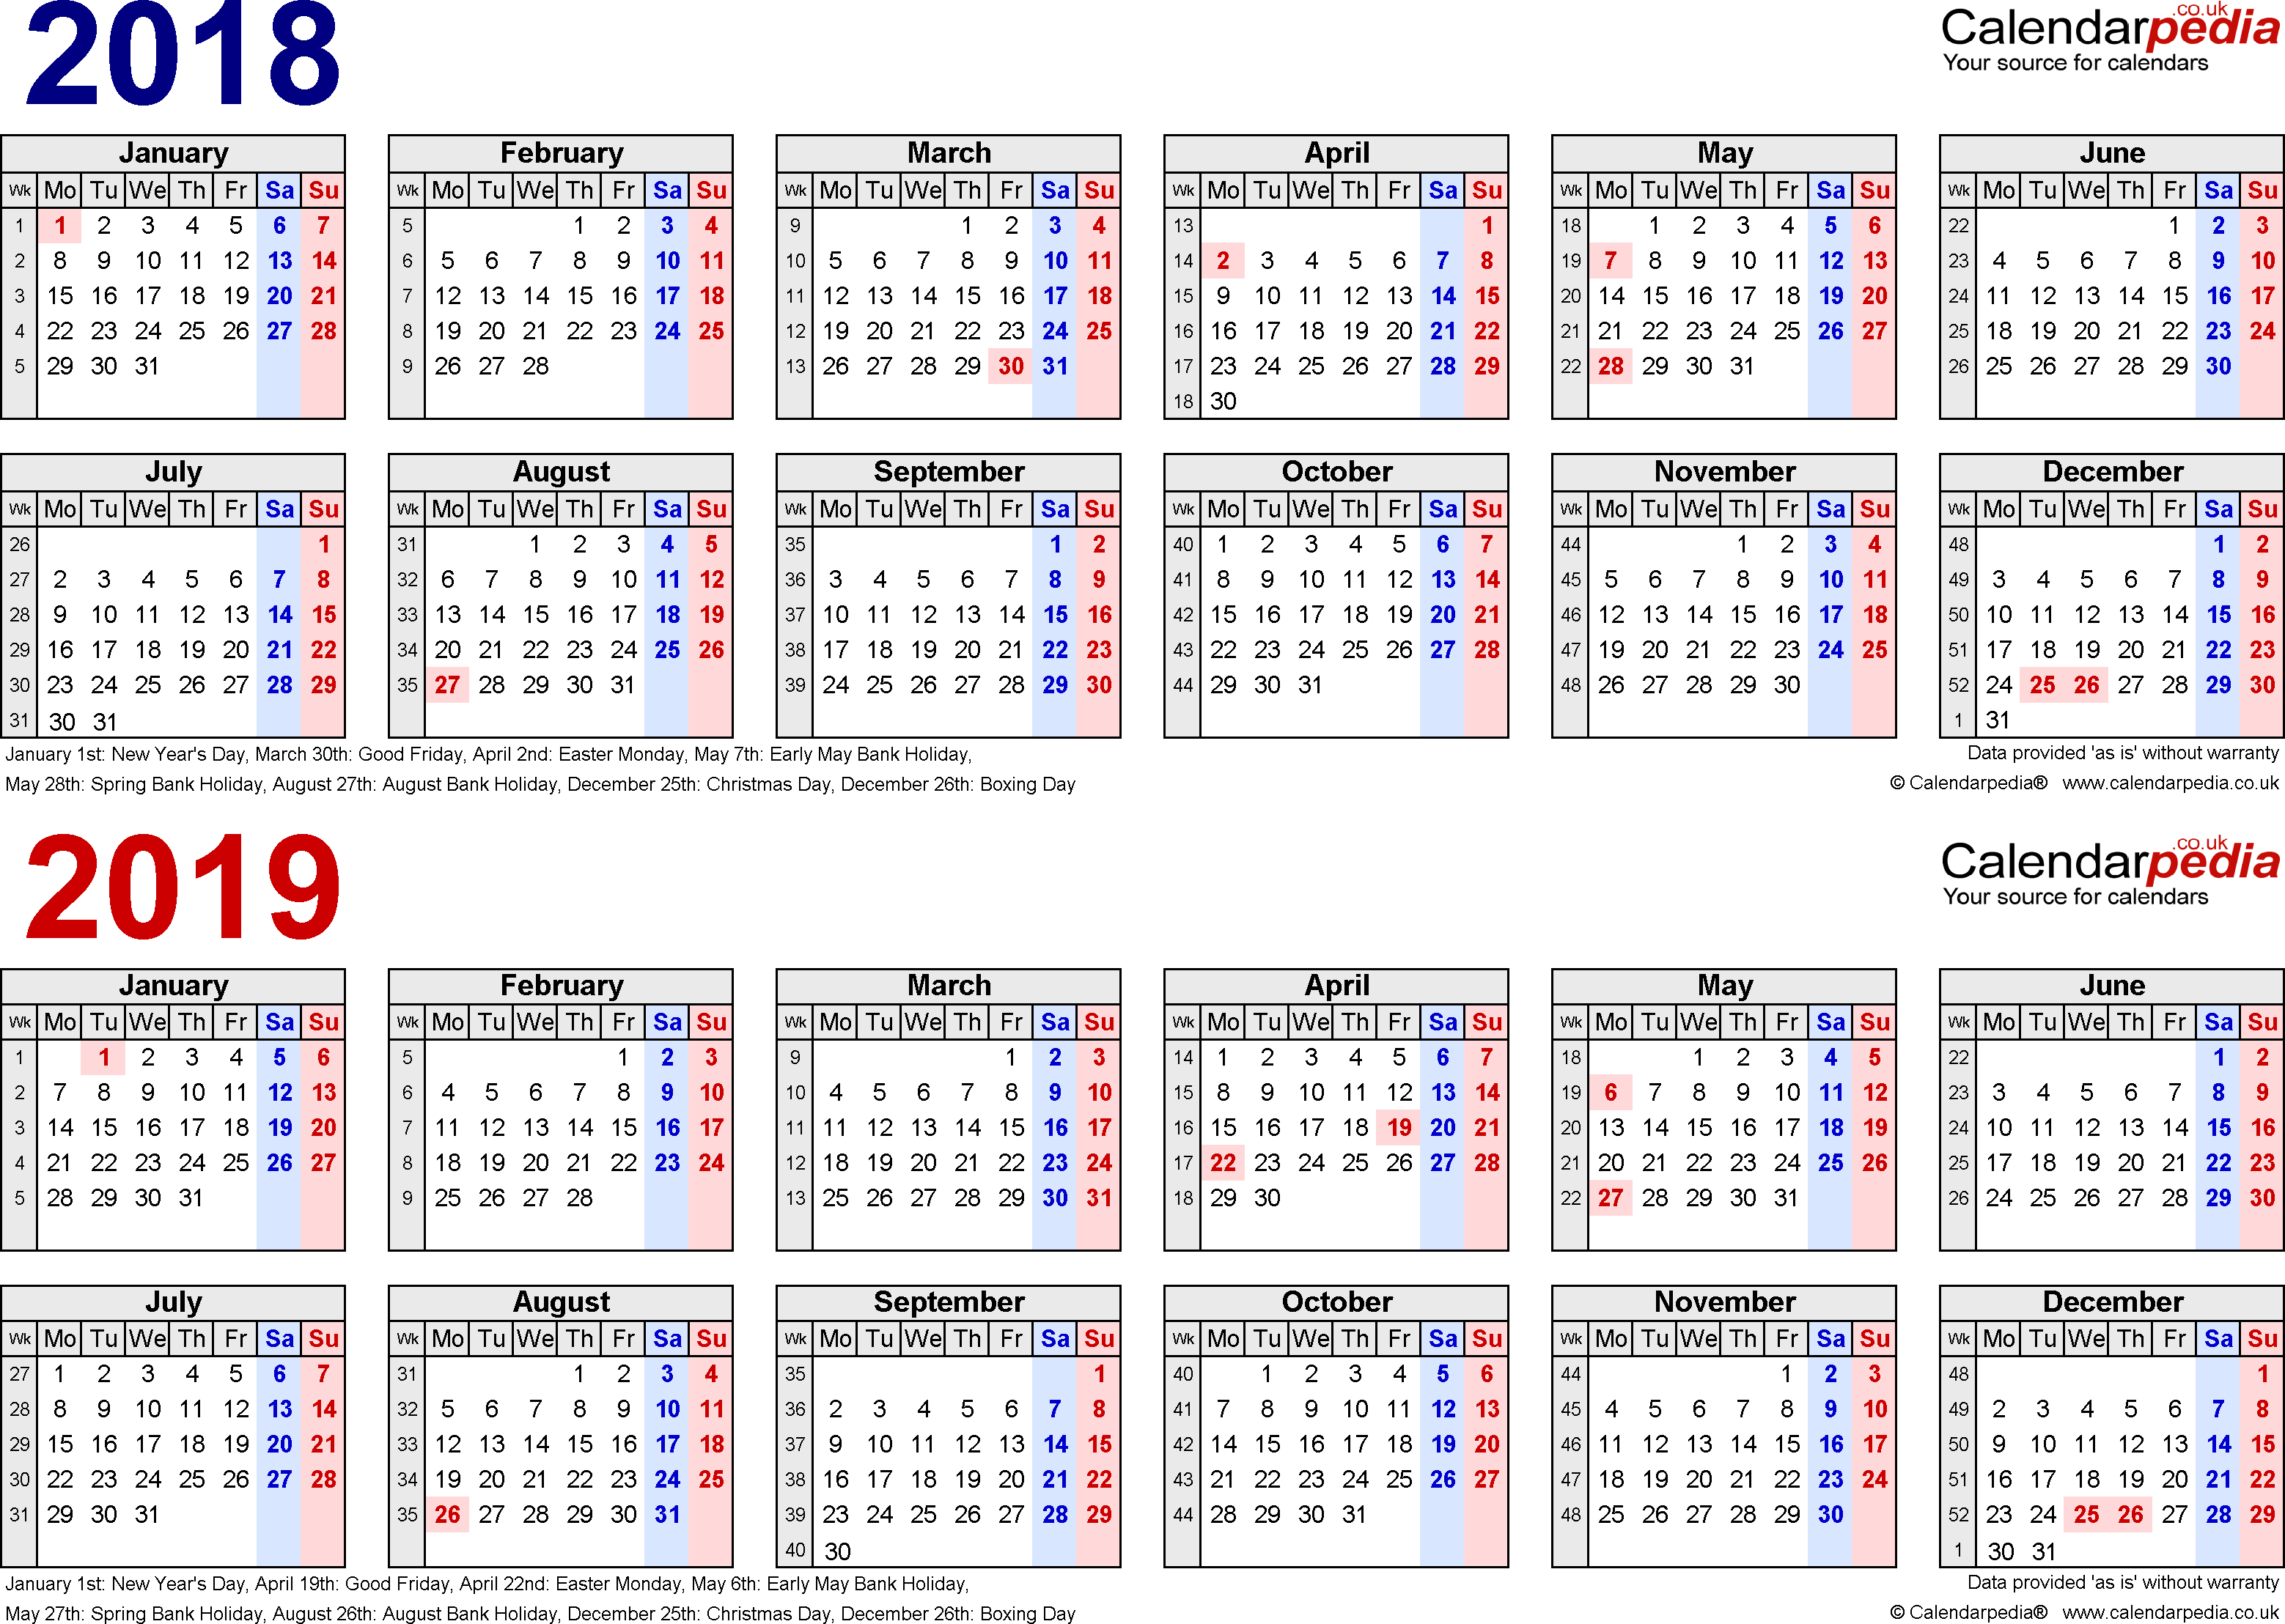 Template 1: PDF template for two year calendar 2018/2019 in blue/red (landscape orientation, 1 page, A4)